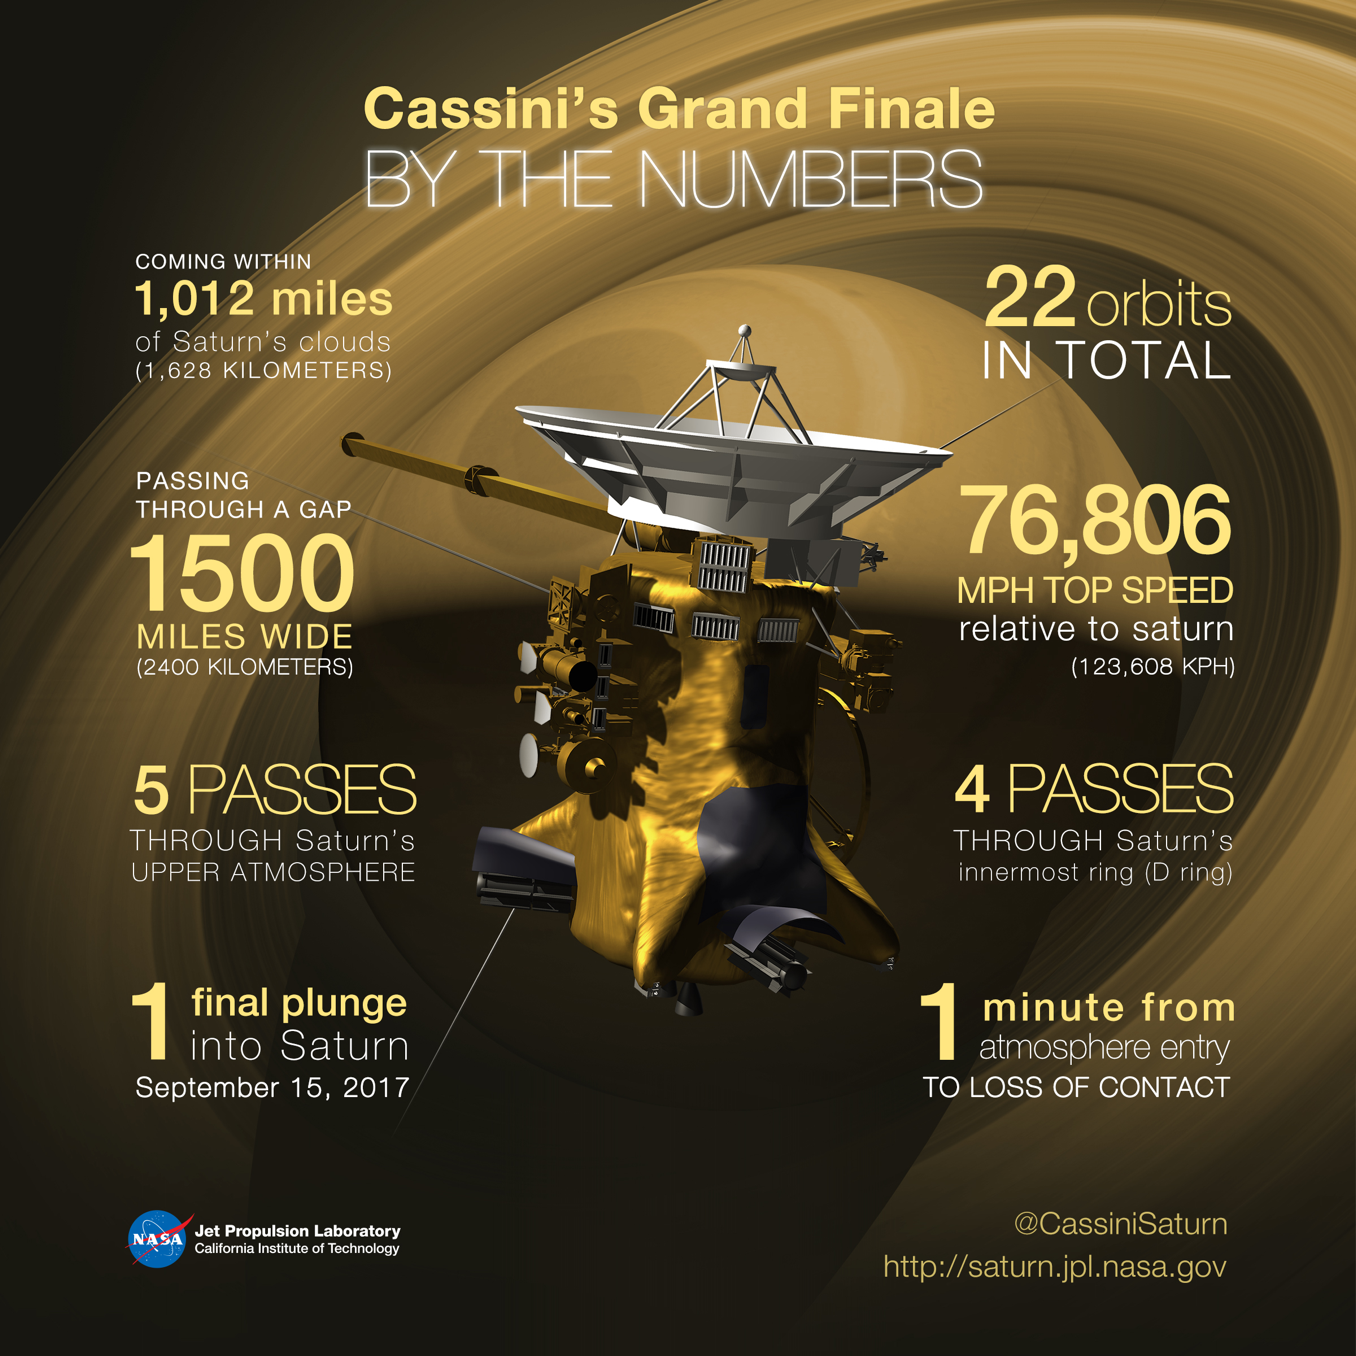 Illustrated graphic breaking down Cassini's Grand Finale. Full text in caption.